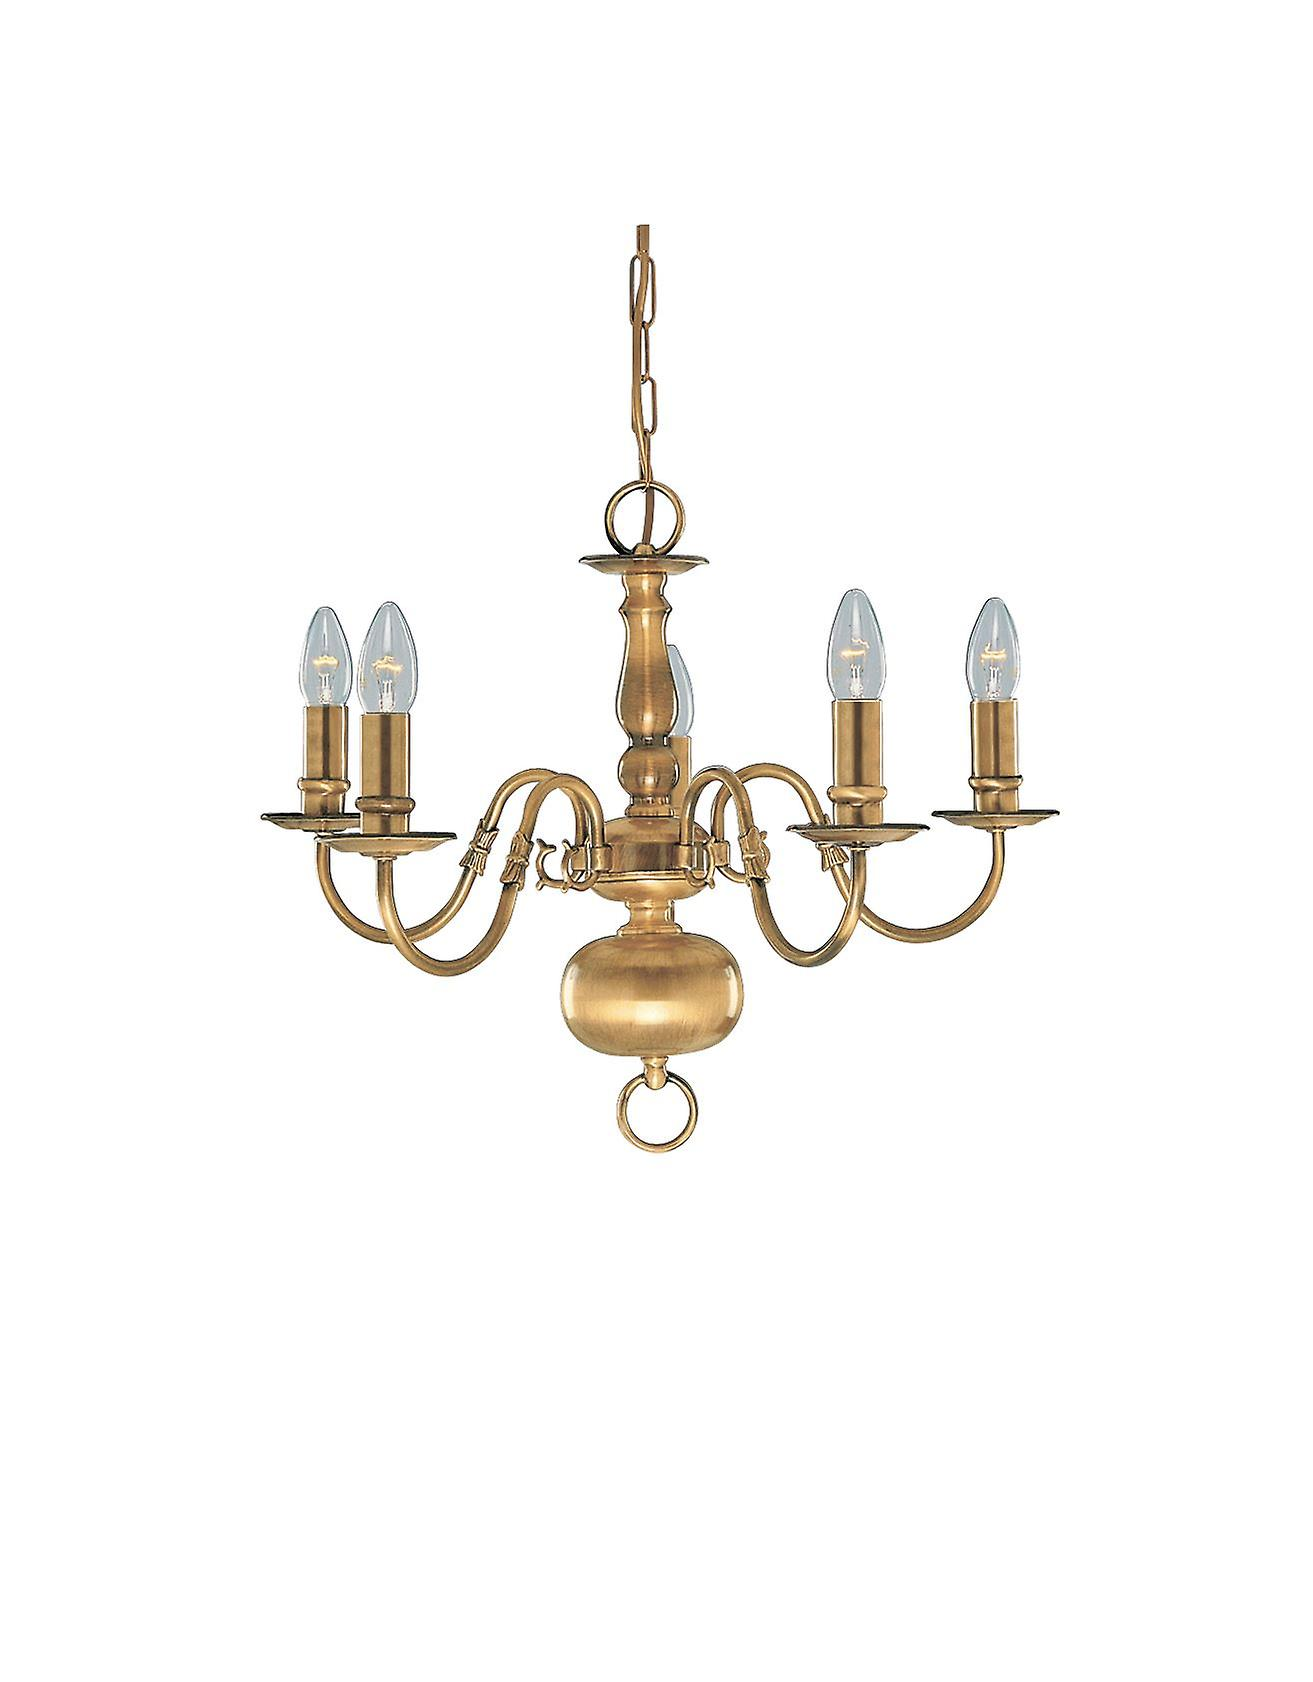 Flemish Solid Brass Five Light Ceiling Light In Antique Brass - Searchlight 1019-5AB